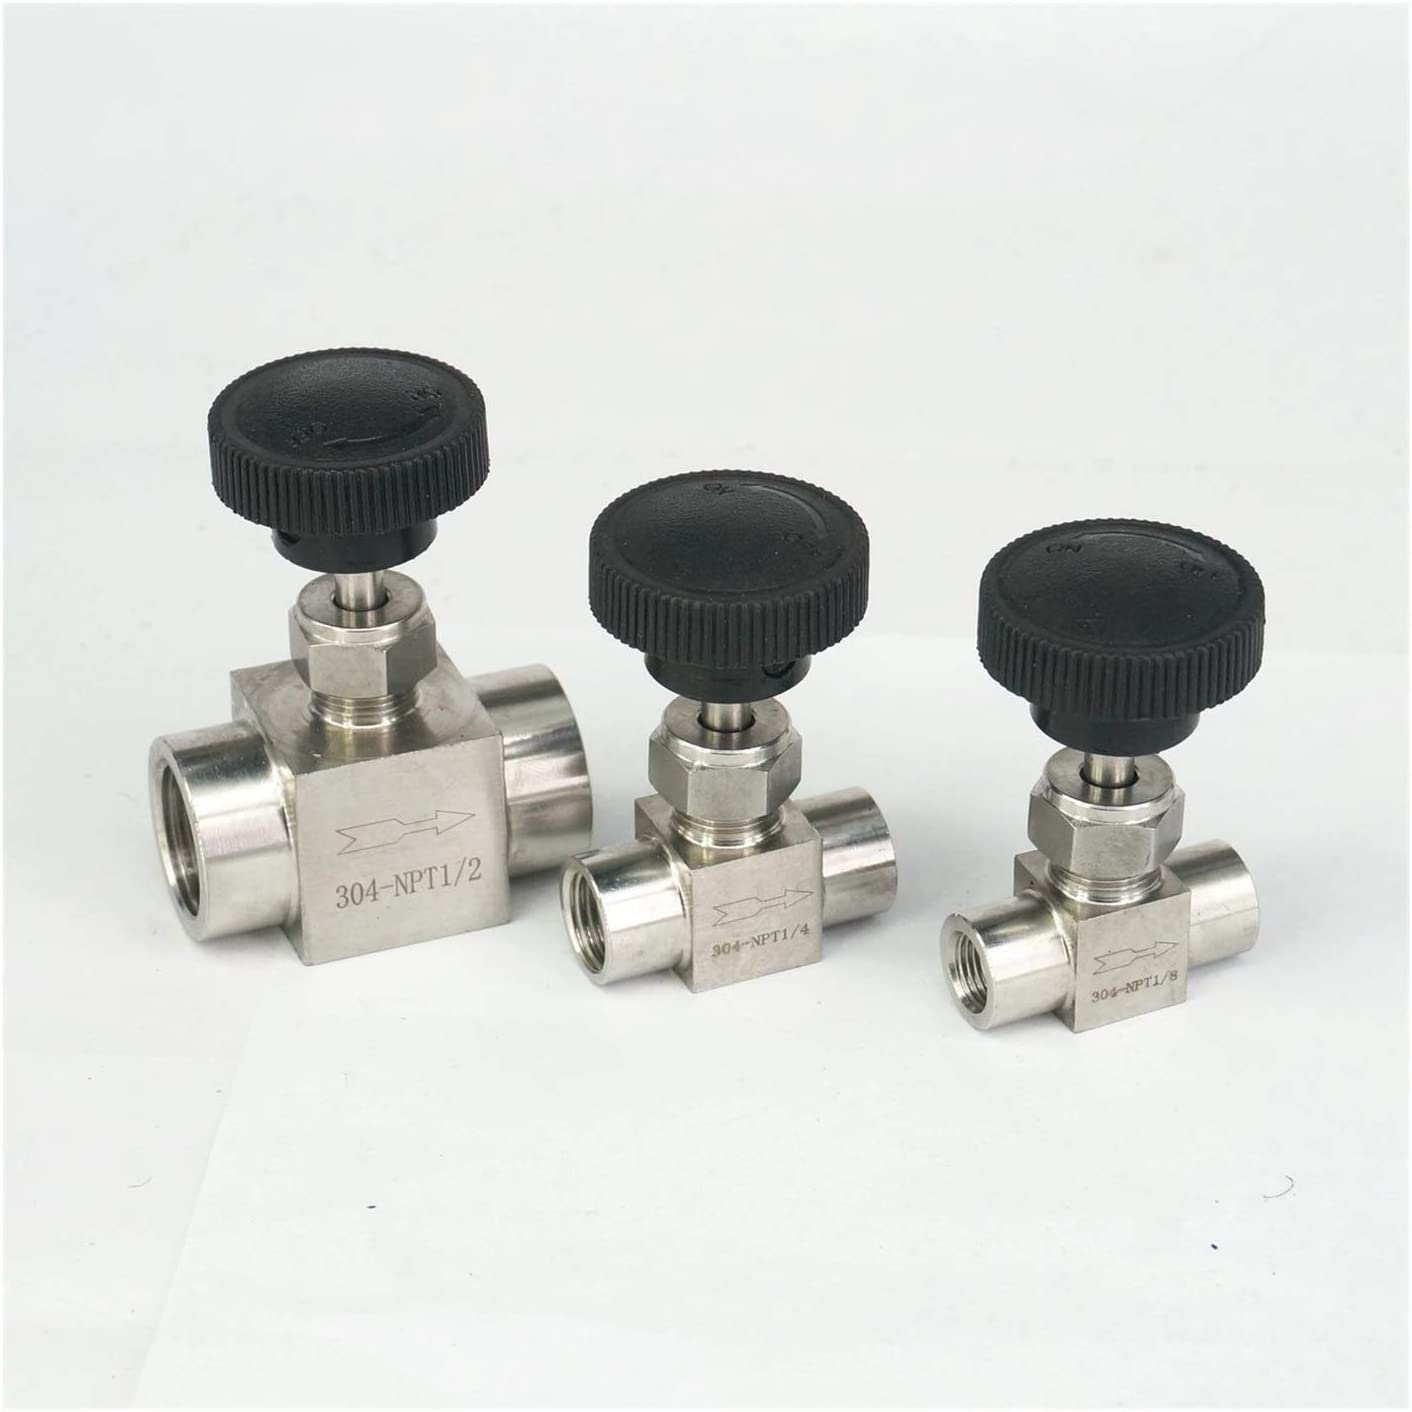 BAIJIAXIUSHANG-TIES Valves Fittings 1//8 1//4 1//2 Inch NPT Female Needle Valve 304 Stainless Steel Flow Control Water Gas Oil NPT Valves Thread Specification : 1//4